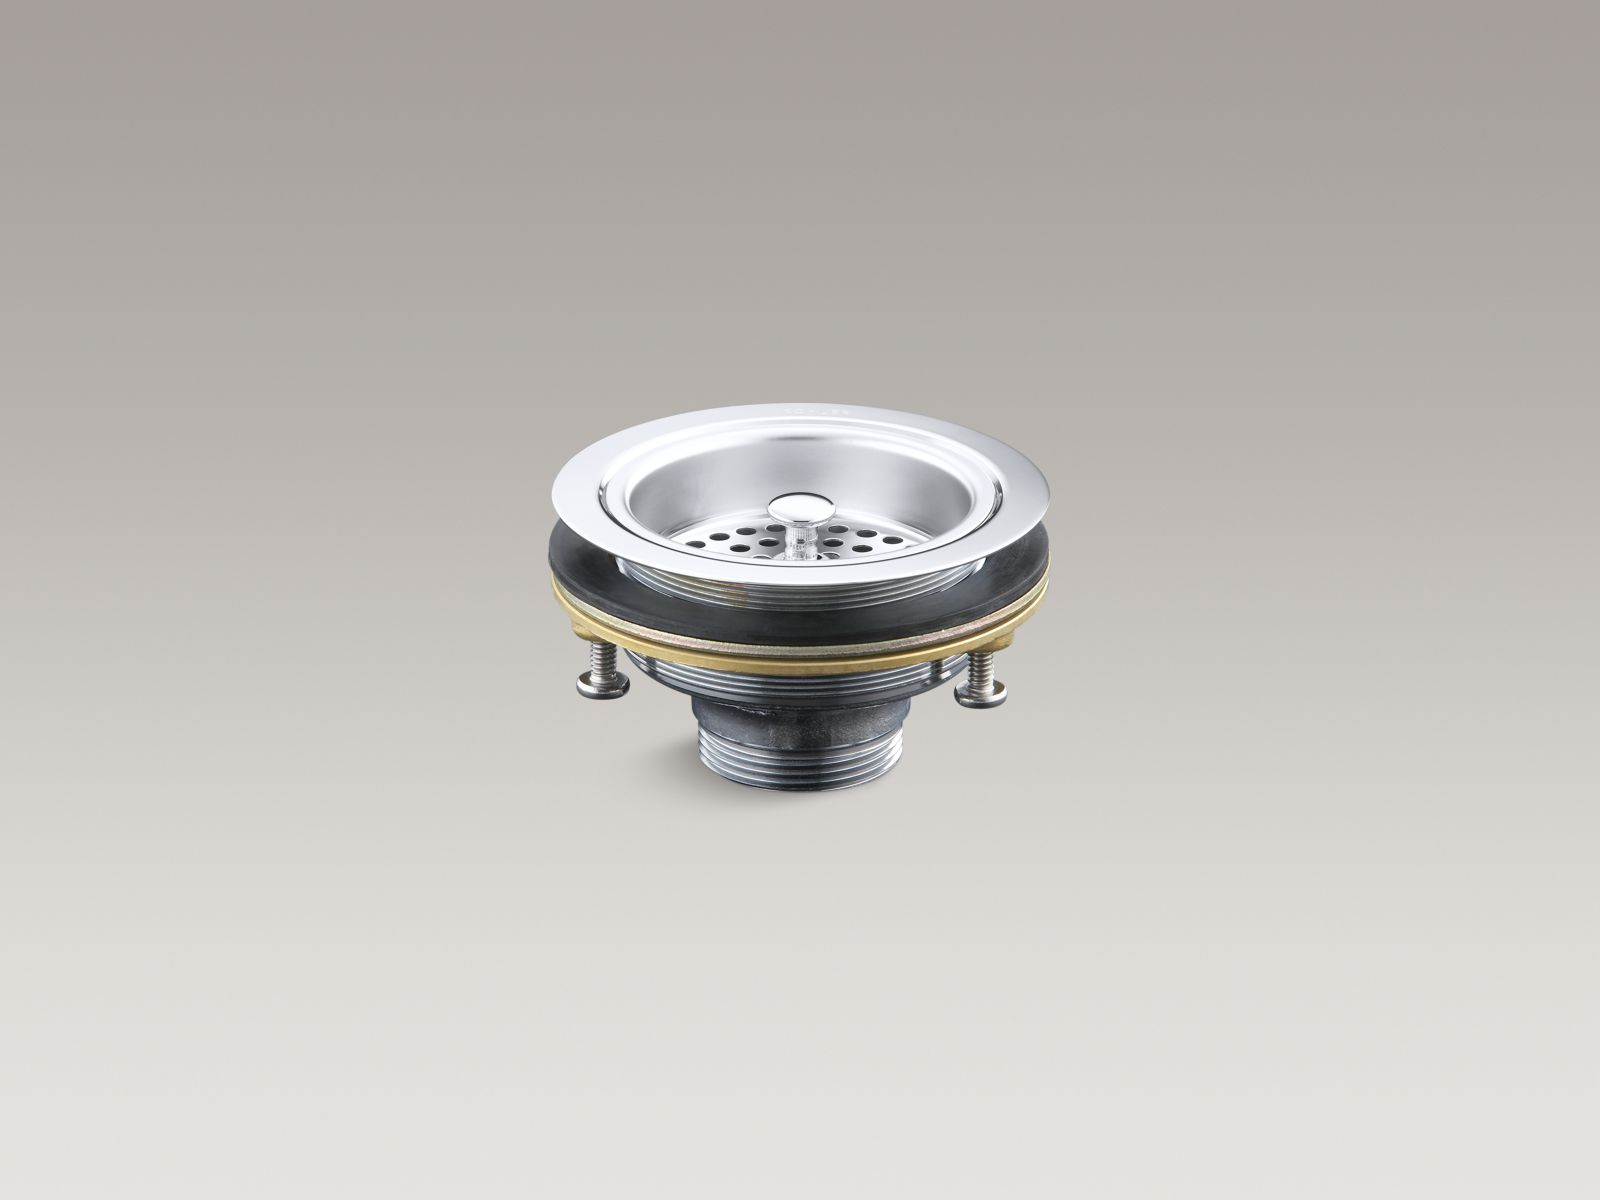 Kohler K-8799-CP Sink Strainer - Less Tail Piece, Polished Chrome